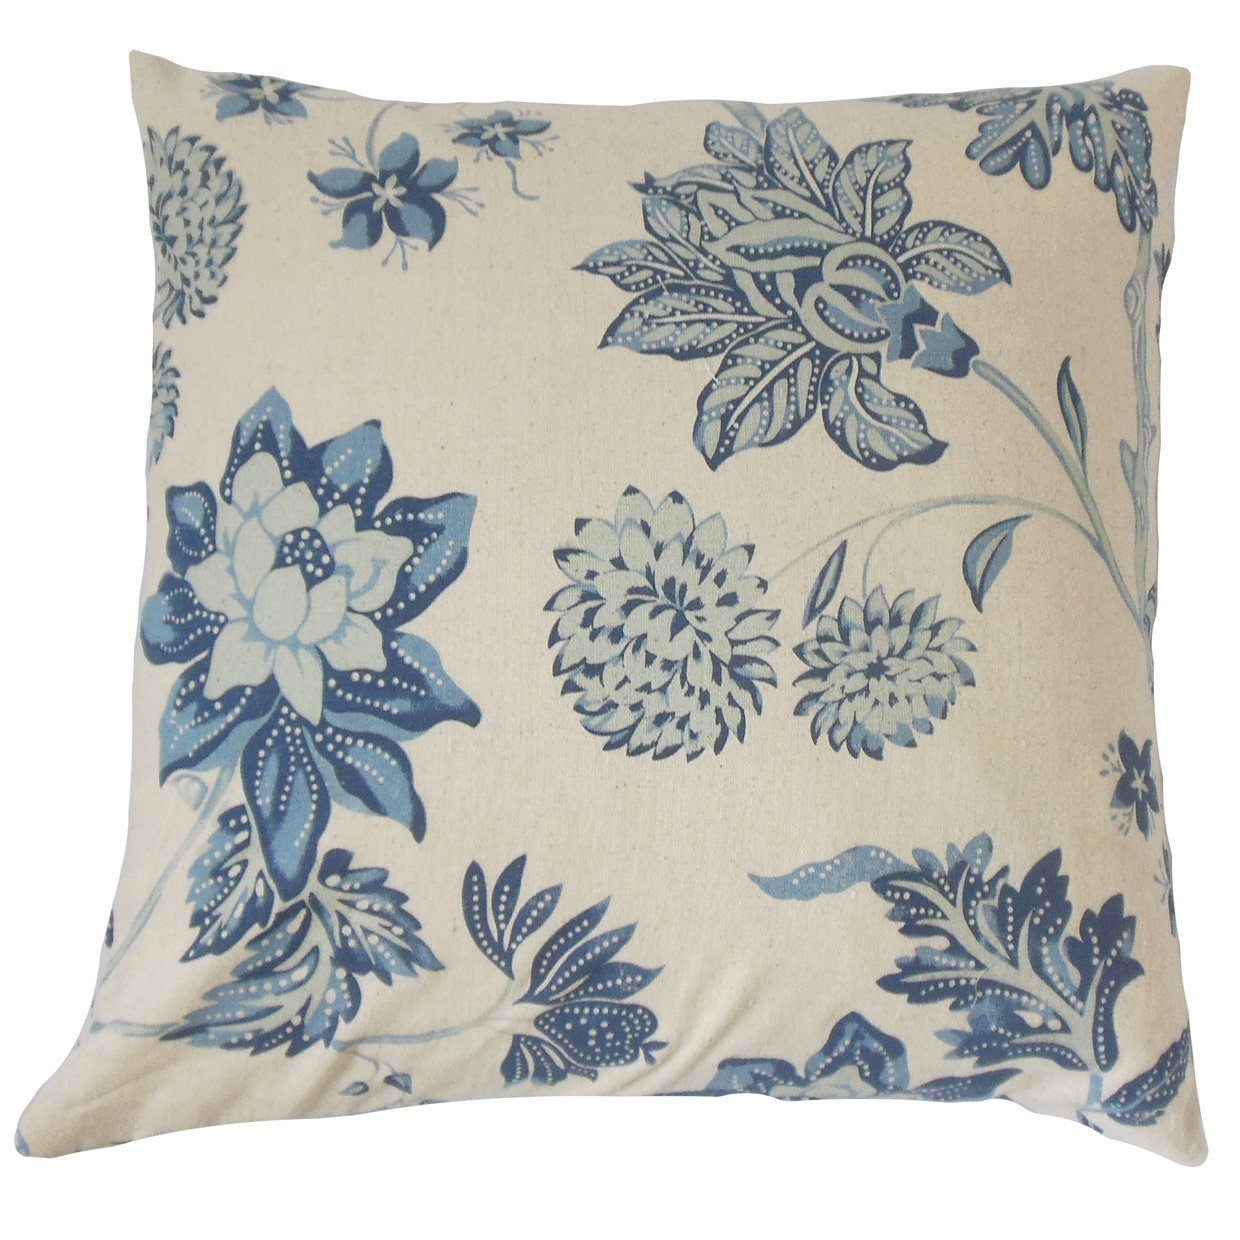 The Pillow Collection KING-LCR-THAI-BUE-C100 Mairead Floral Bedding Sham, King/20'' x 36'', Blue by The Pillow Collection